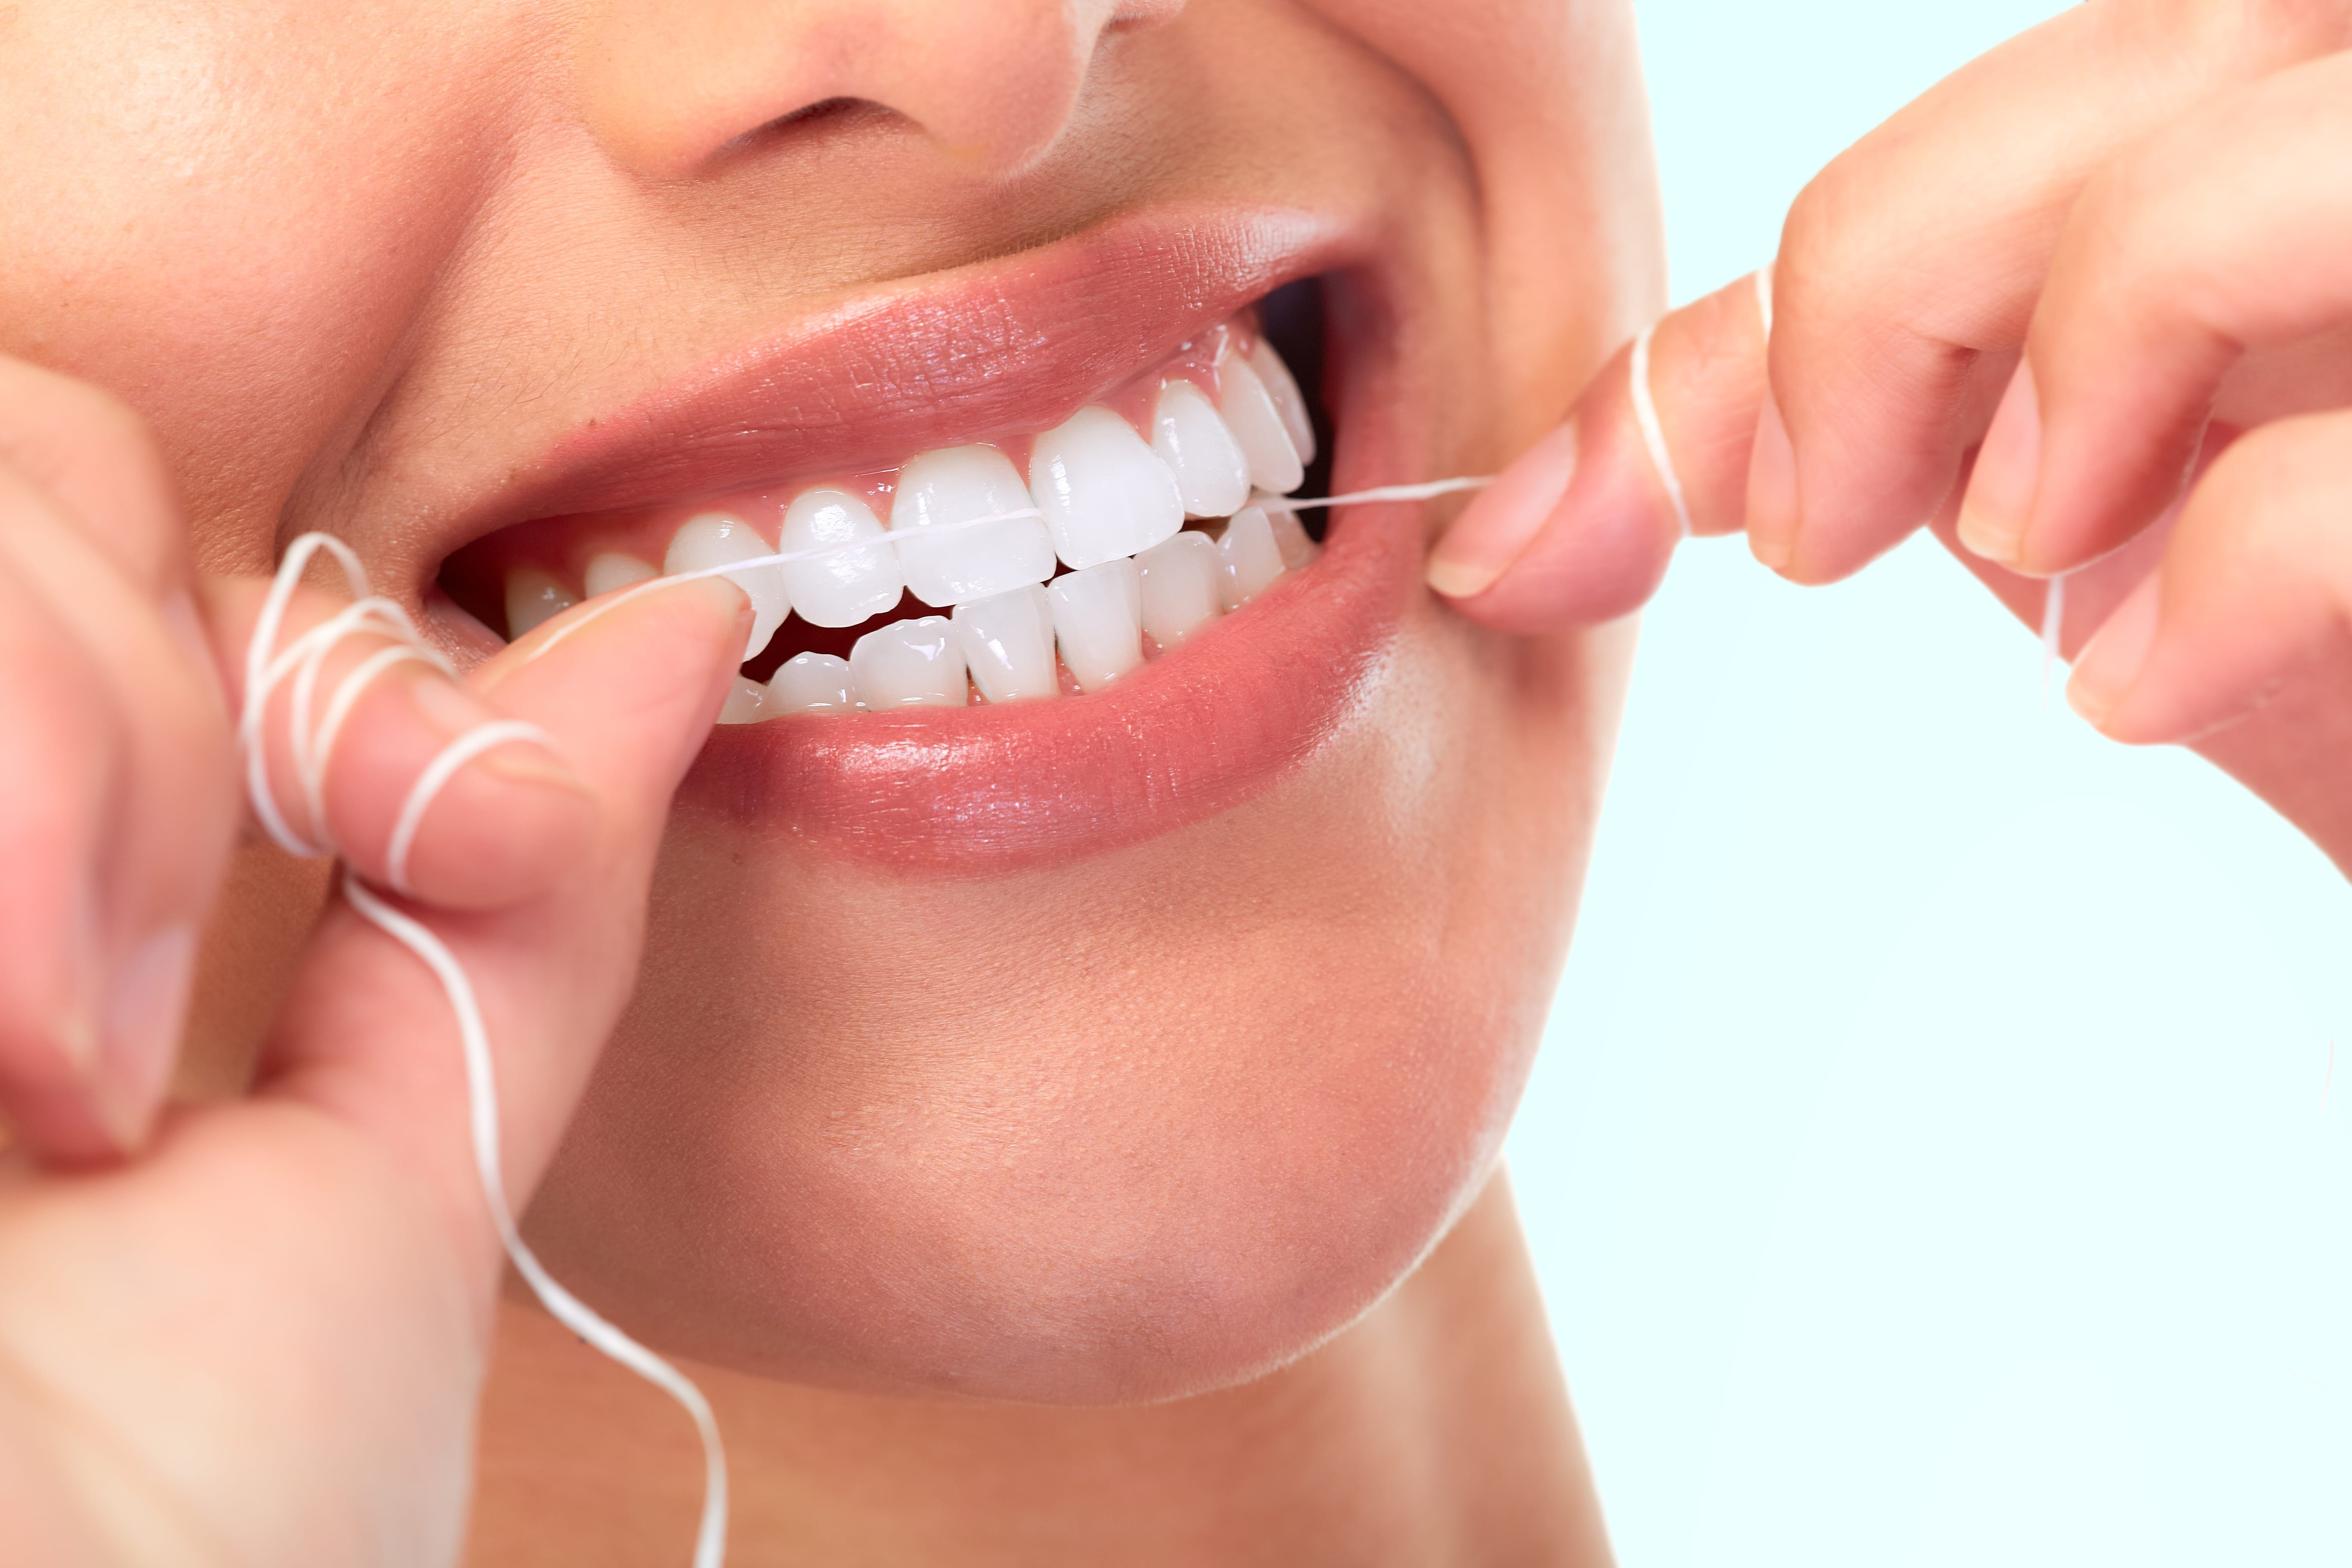 Close up image of a woman flossing her teeth